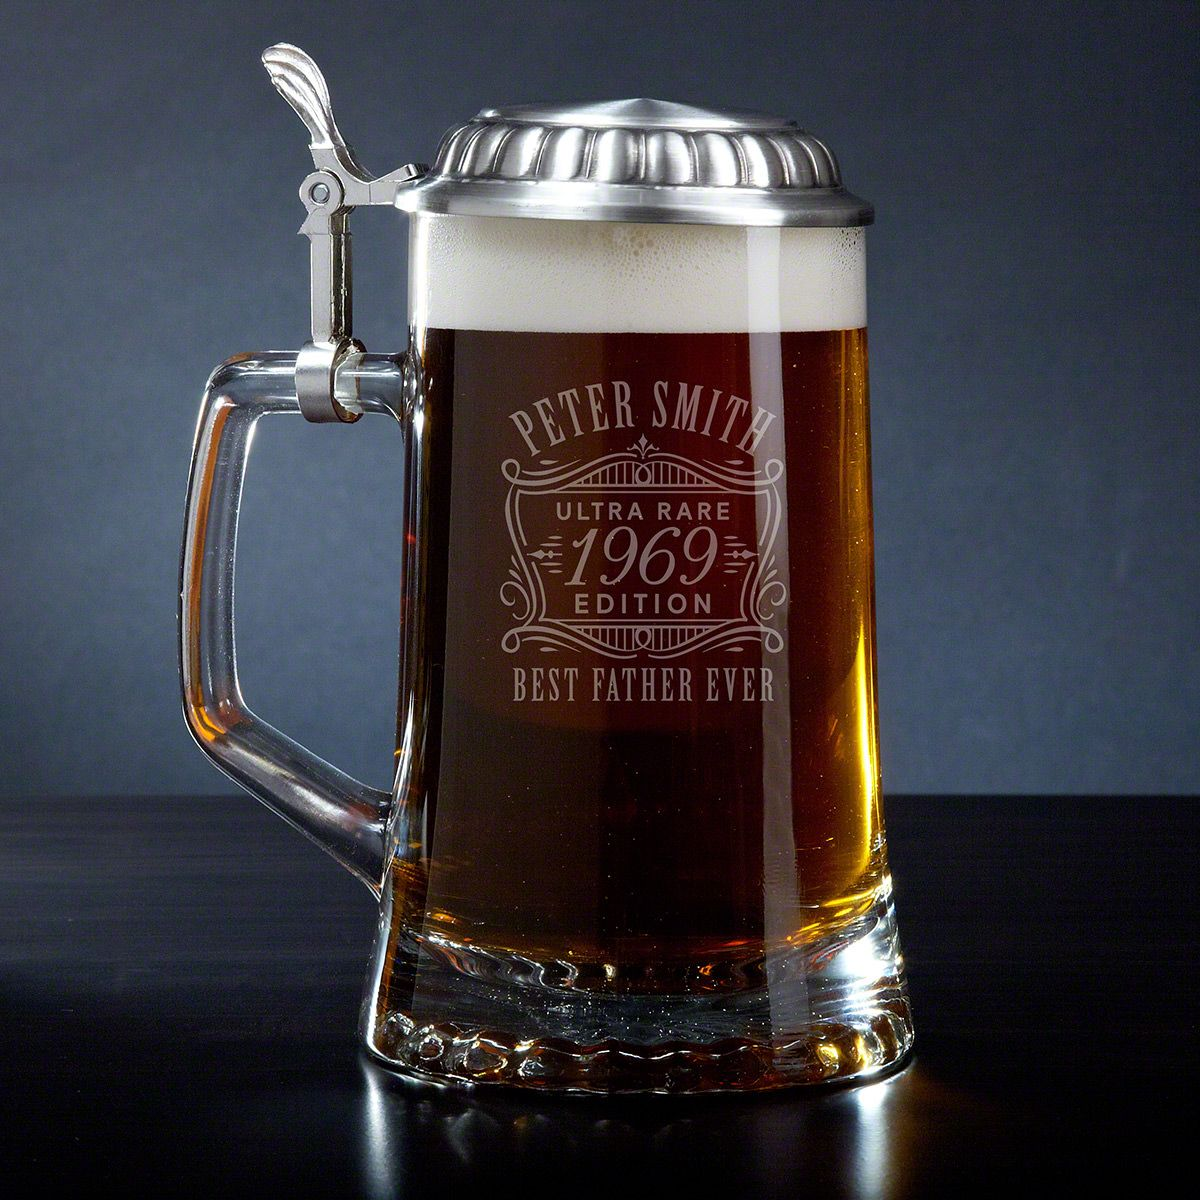 Ultra Rare Edition Personalized Beer Stein